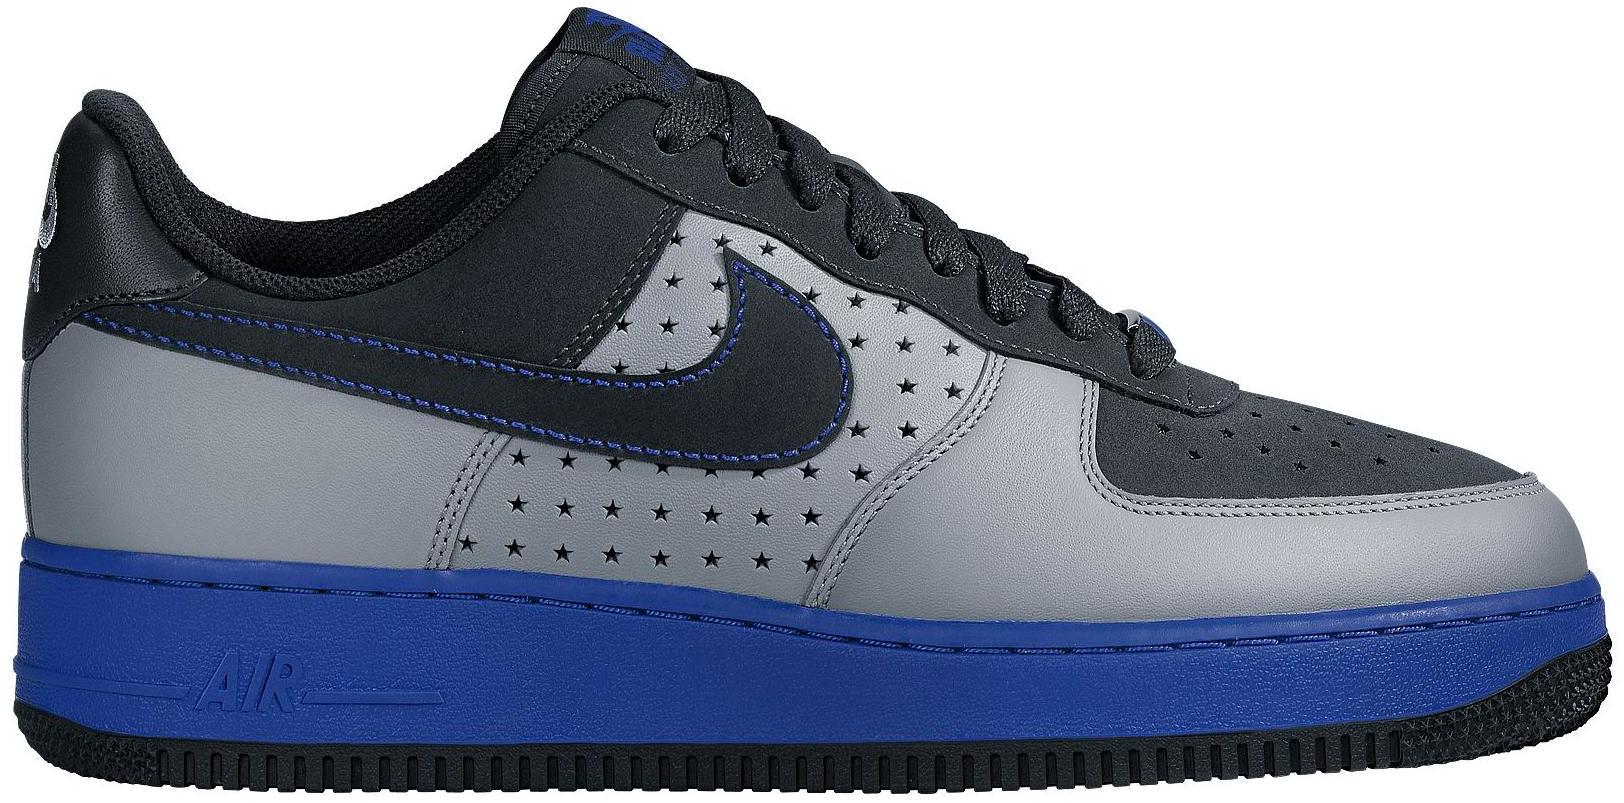 Air Force 1 Low Anthracite Varsity Royal